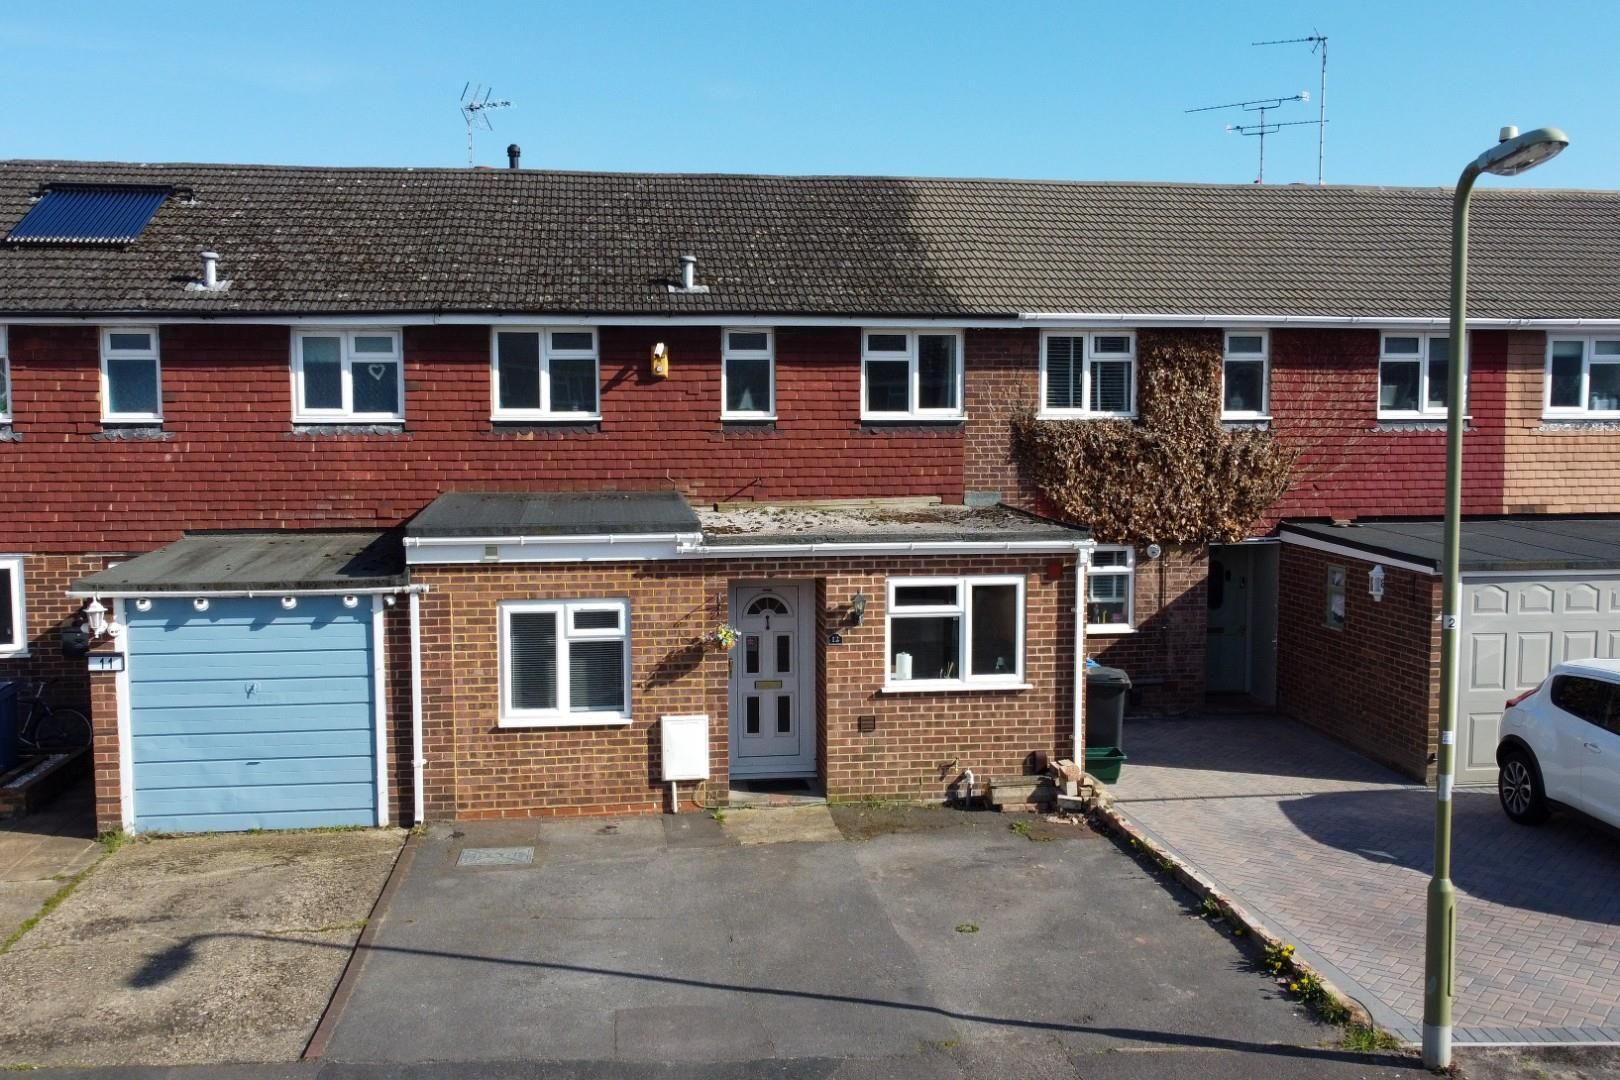 4 bed house for sale in Blackwater, GU17